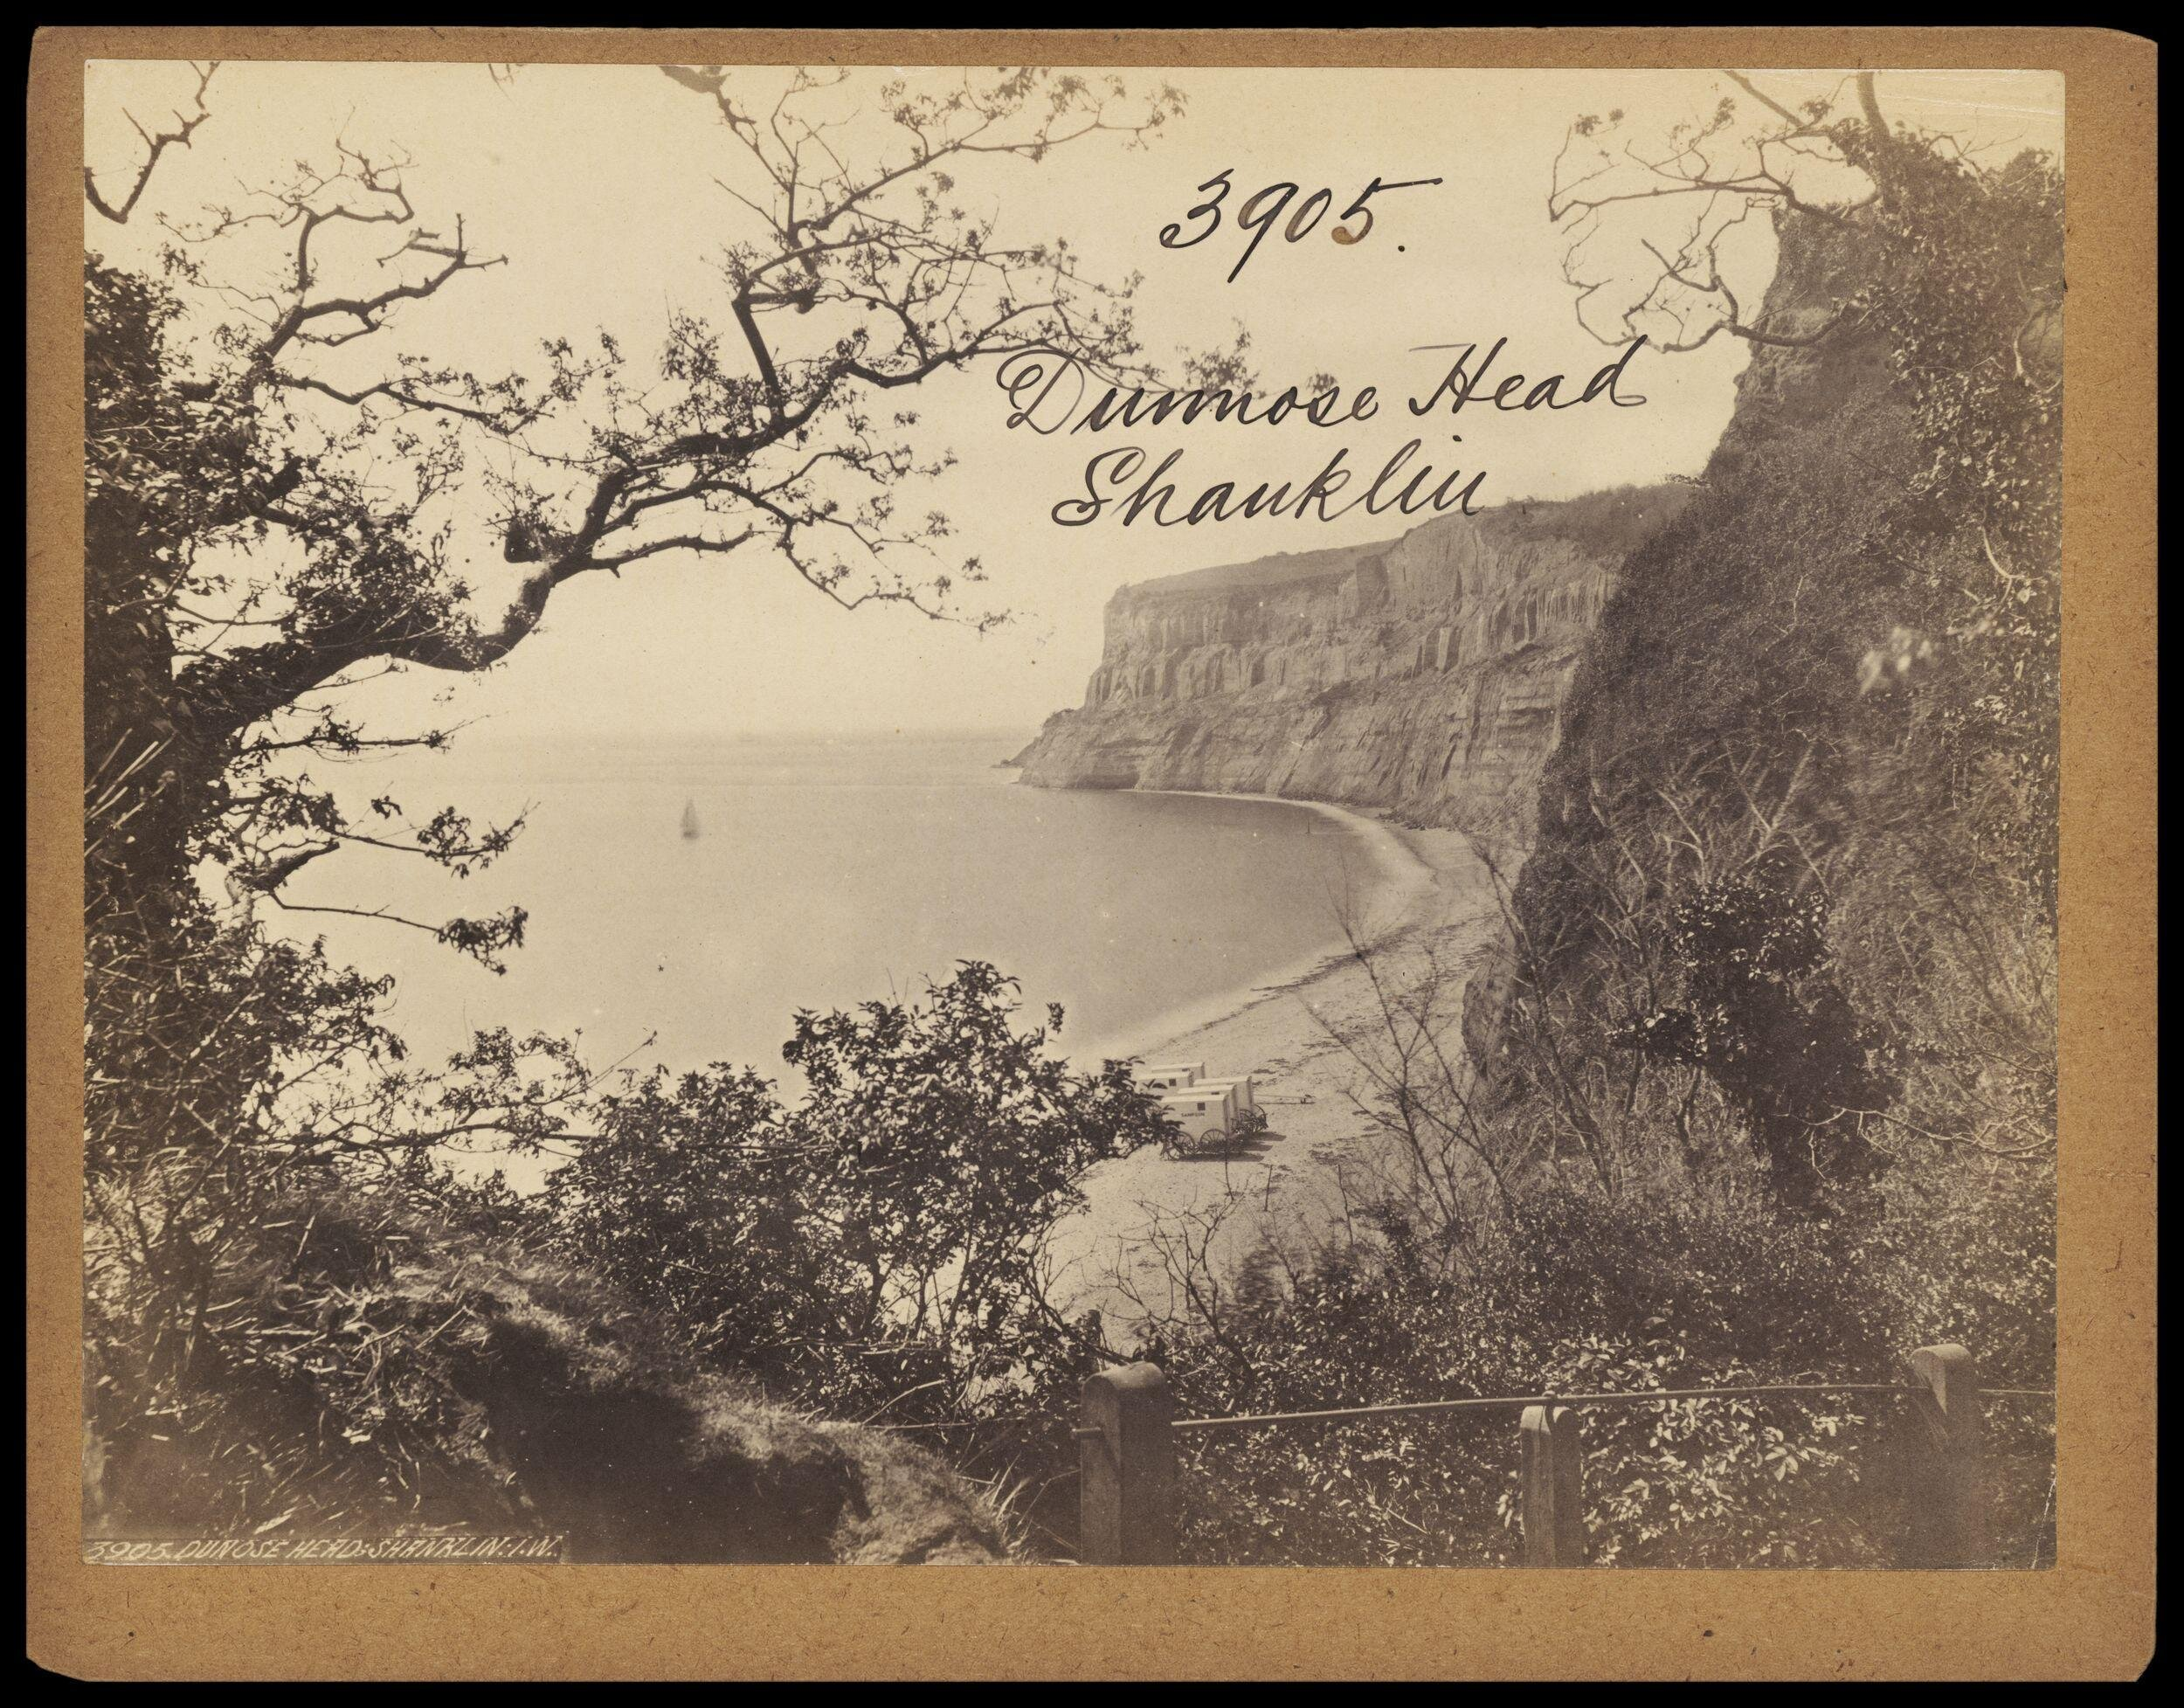 Photograph by Francis Frith; Dunnose Head, Shanklin c.1860 (Victoria and Albert         Museum E.208:3187-1994). Click to enlarge.